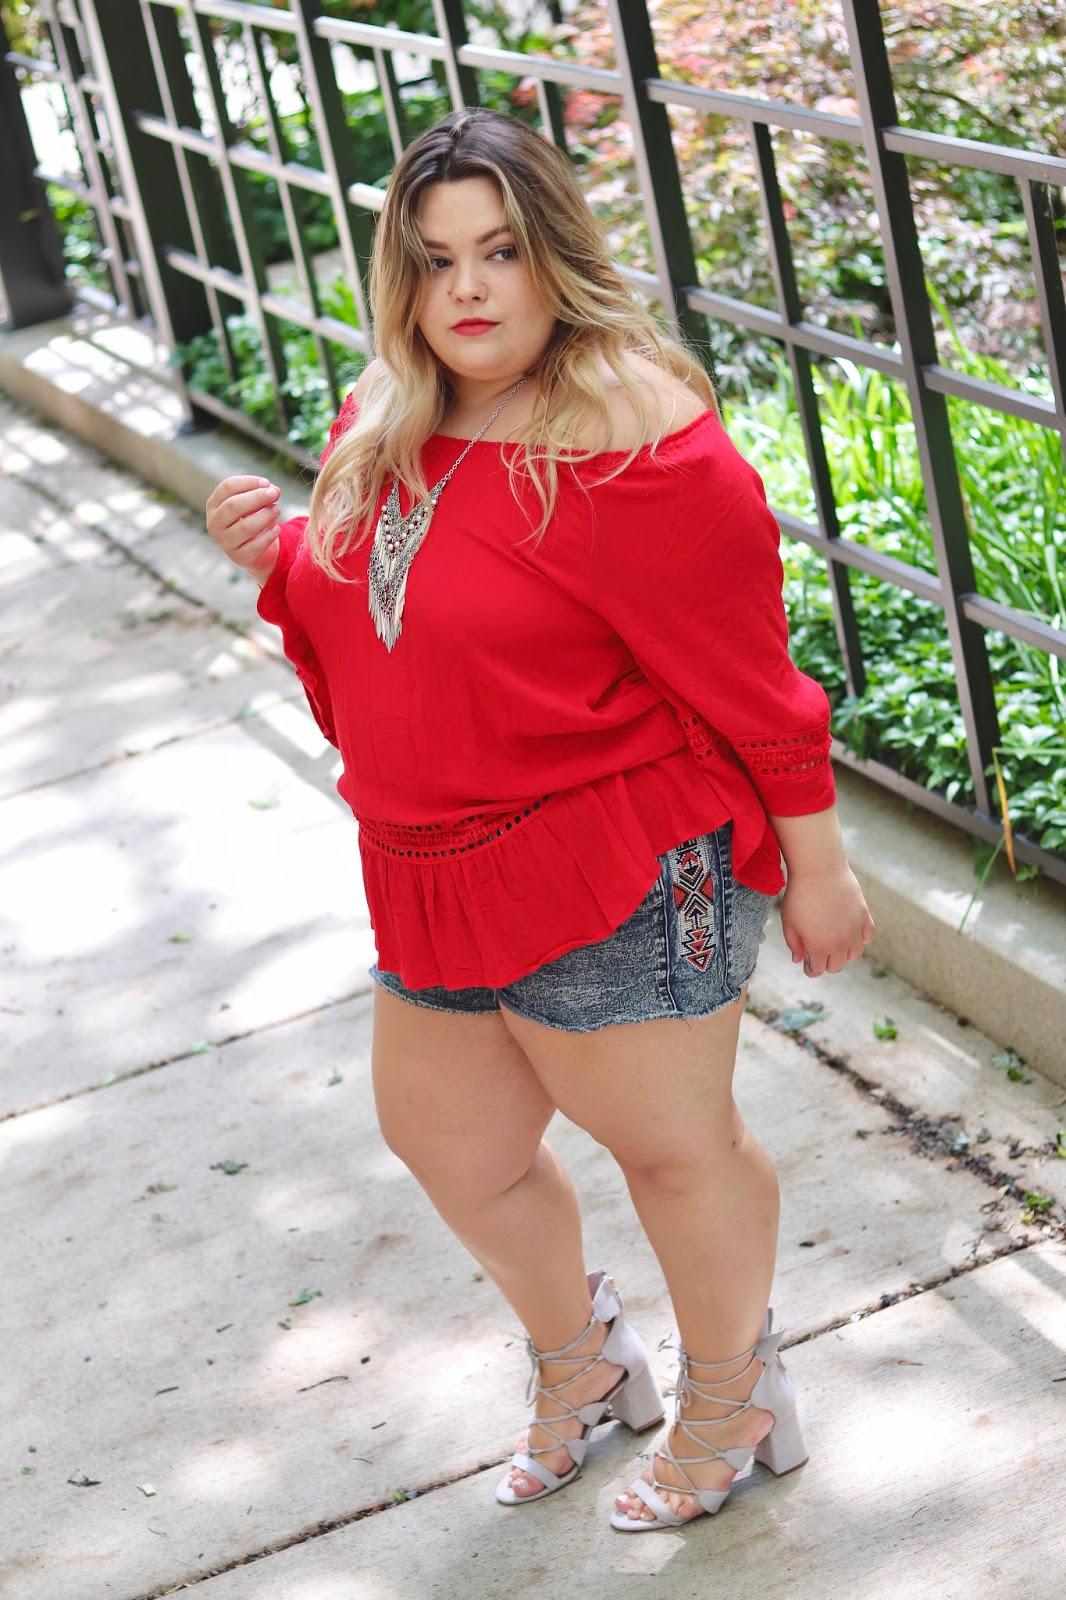 festival fashion inspiration, Chicago, blogger review, natalie craig, natalie in the city, plus size fashion blogger, Chicago blogger, midwest fashion blogger, plus size, affordable plus size fashion, DJ Khaled wild thoughts ft. Rihanna Bryson tiller, Rihanna red top wild thoughts, wild thoughts music video, Rihanna style, plus size fashion, fatshion, curves and confidence, curvy, summer plus size fashion